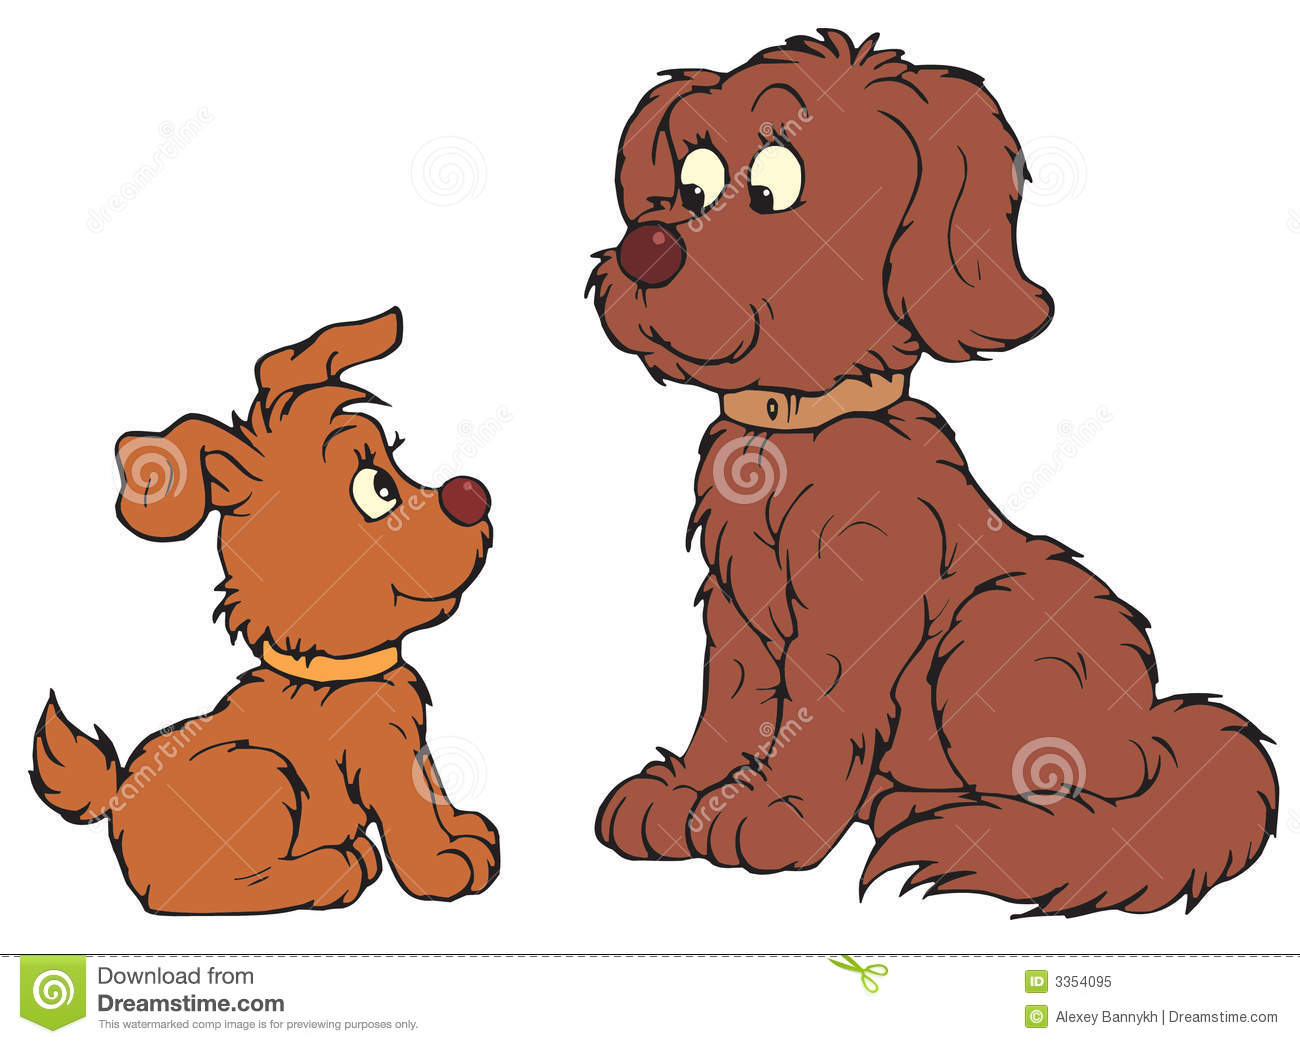 Puppy vs dog clipart jpg transparent library Puppy vs dog clipart - ClipartFest jpg transparent library